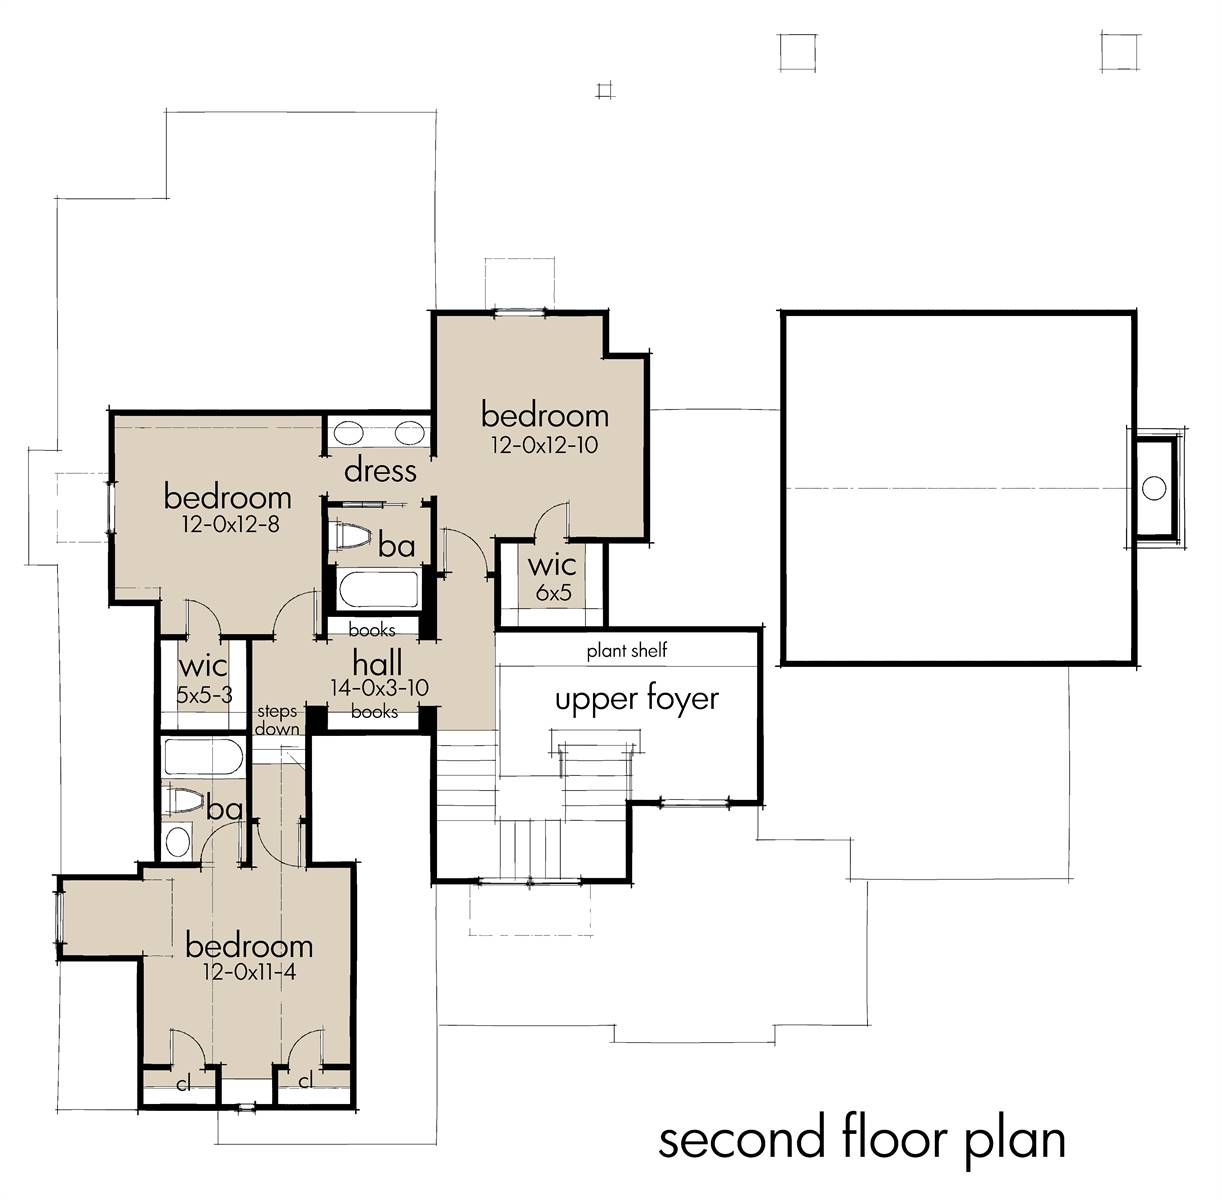 Second Floor Plan image of Rolling Wood Hills House Plan